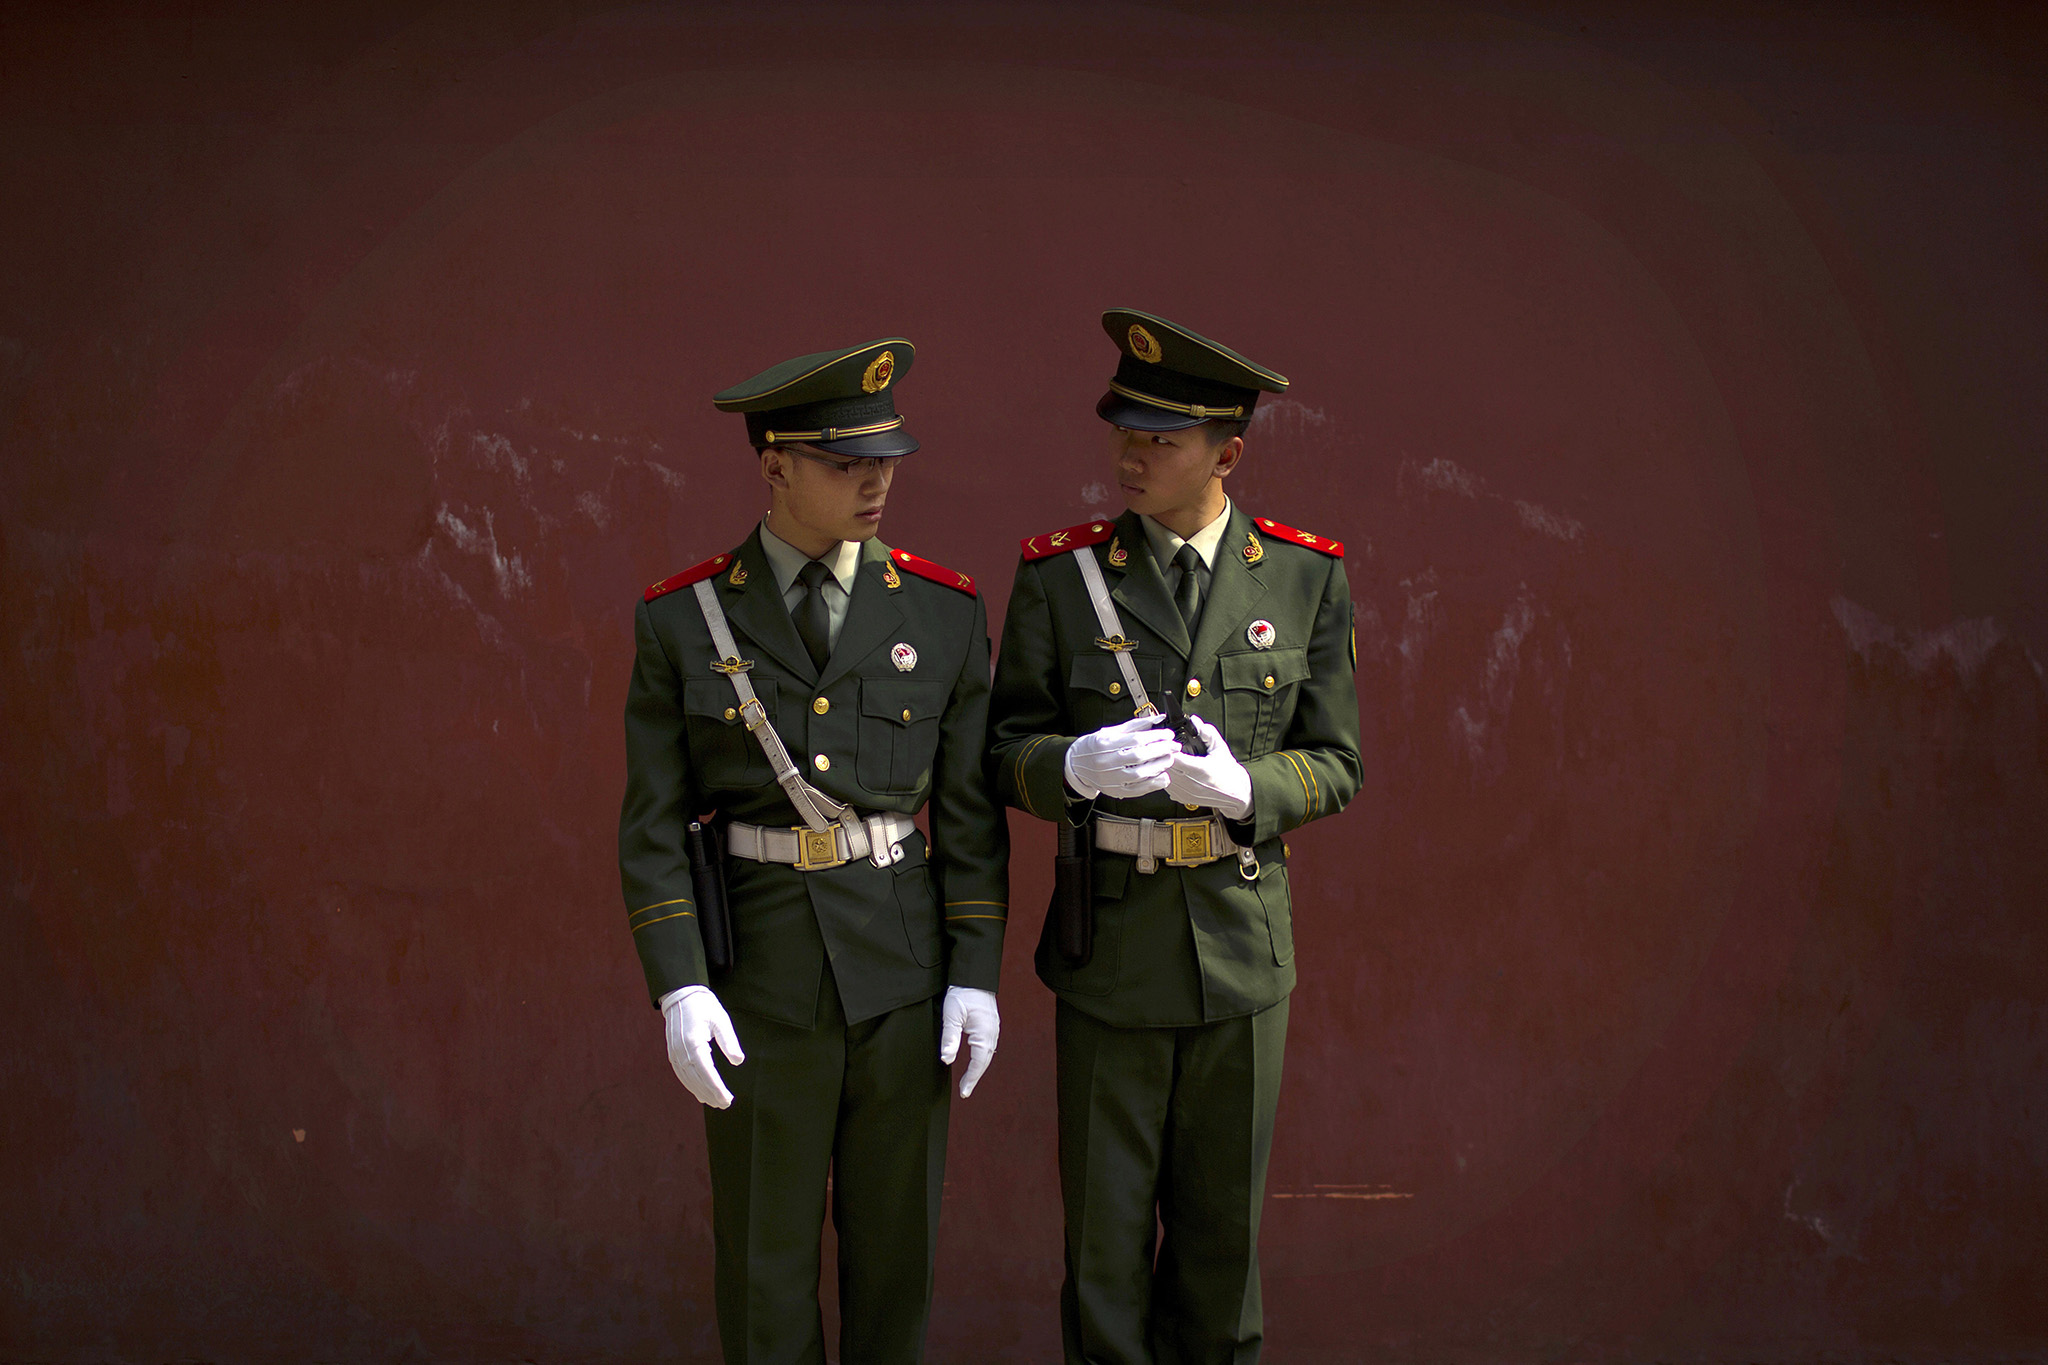 A pair of Chinese paramilitary policemen keep watch at a park in Beijing, Monday, Oct. 3, 2016. Saturday was China's National Day holiday, the start of a weeklong holiday period during which millions of Chinese travel and visit tourist sites. (AP Photo/Mark Schiefelbein)